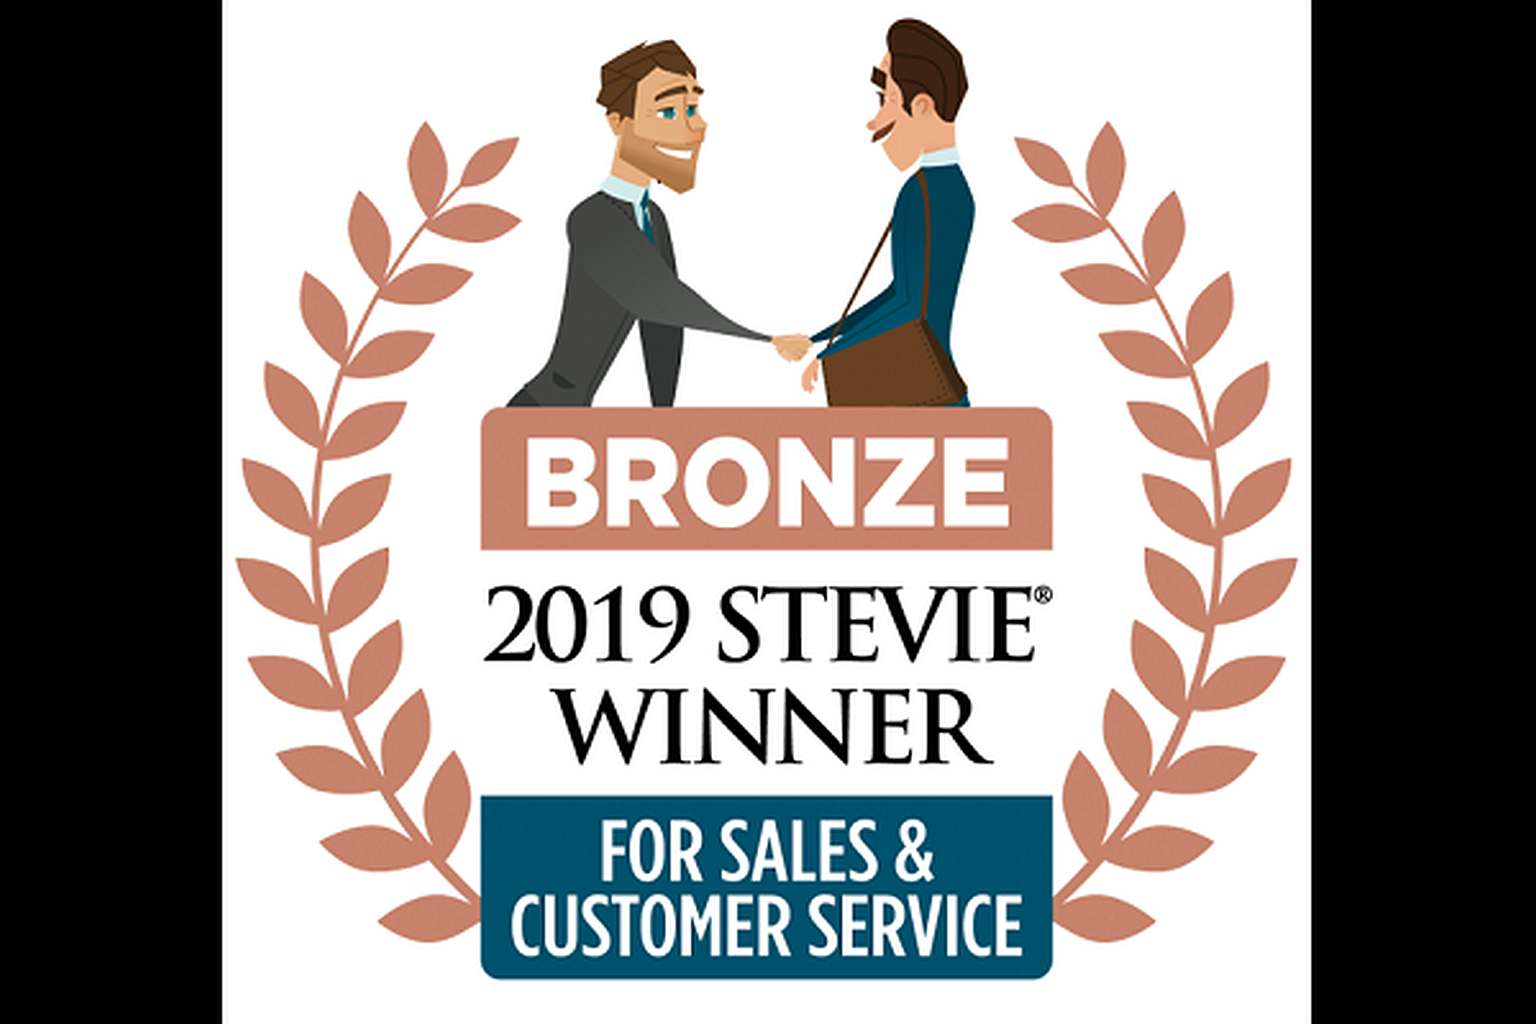 CT Corporation's Customer Service Wins a 2019 Stevie Award